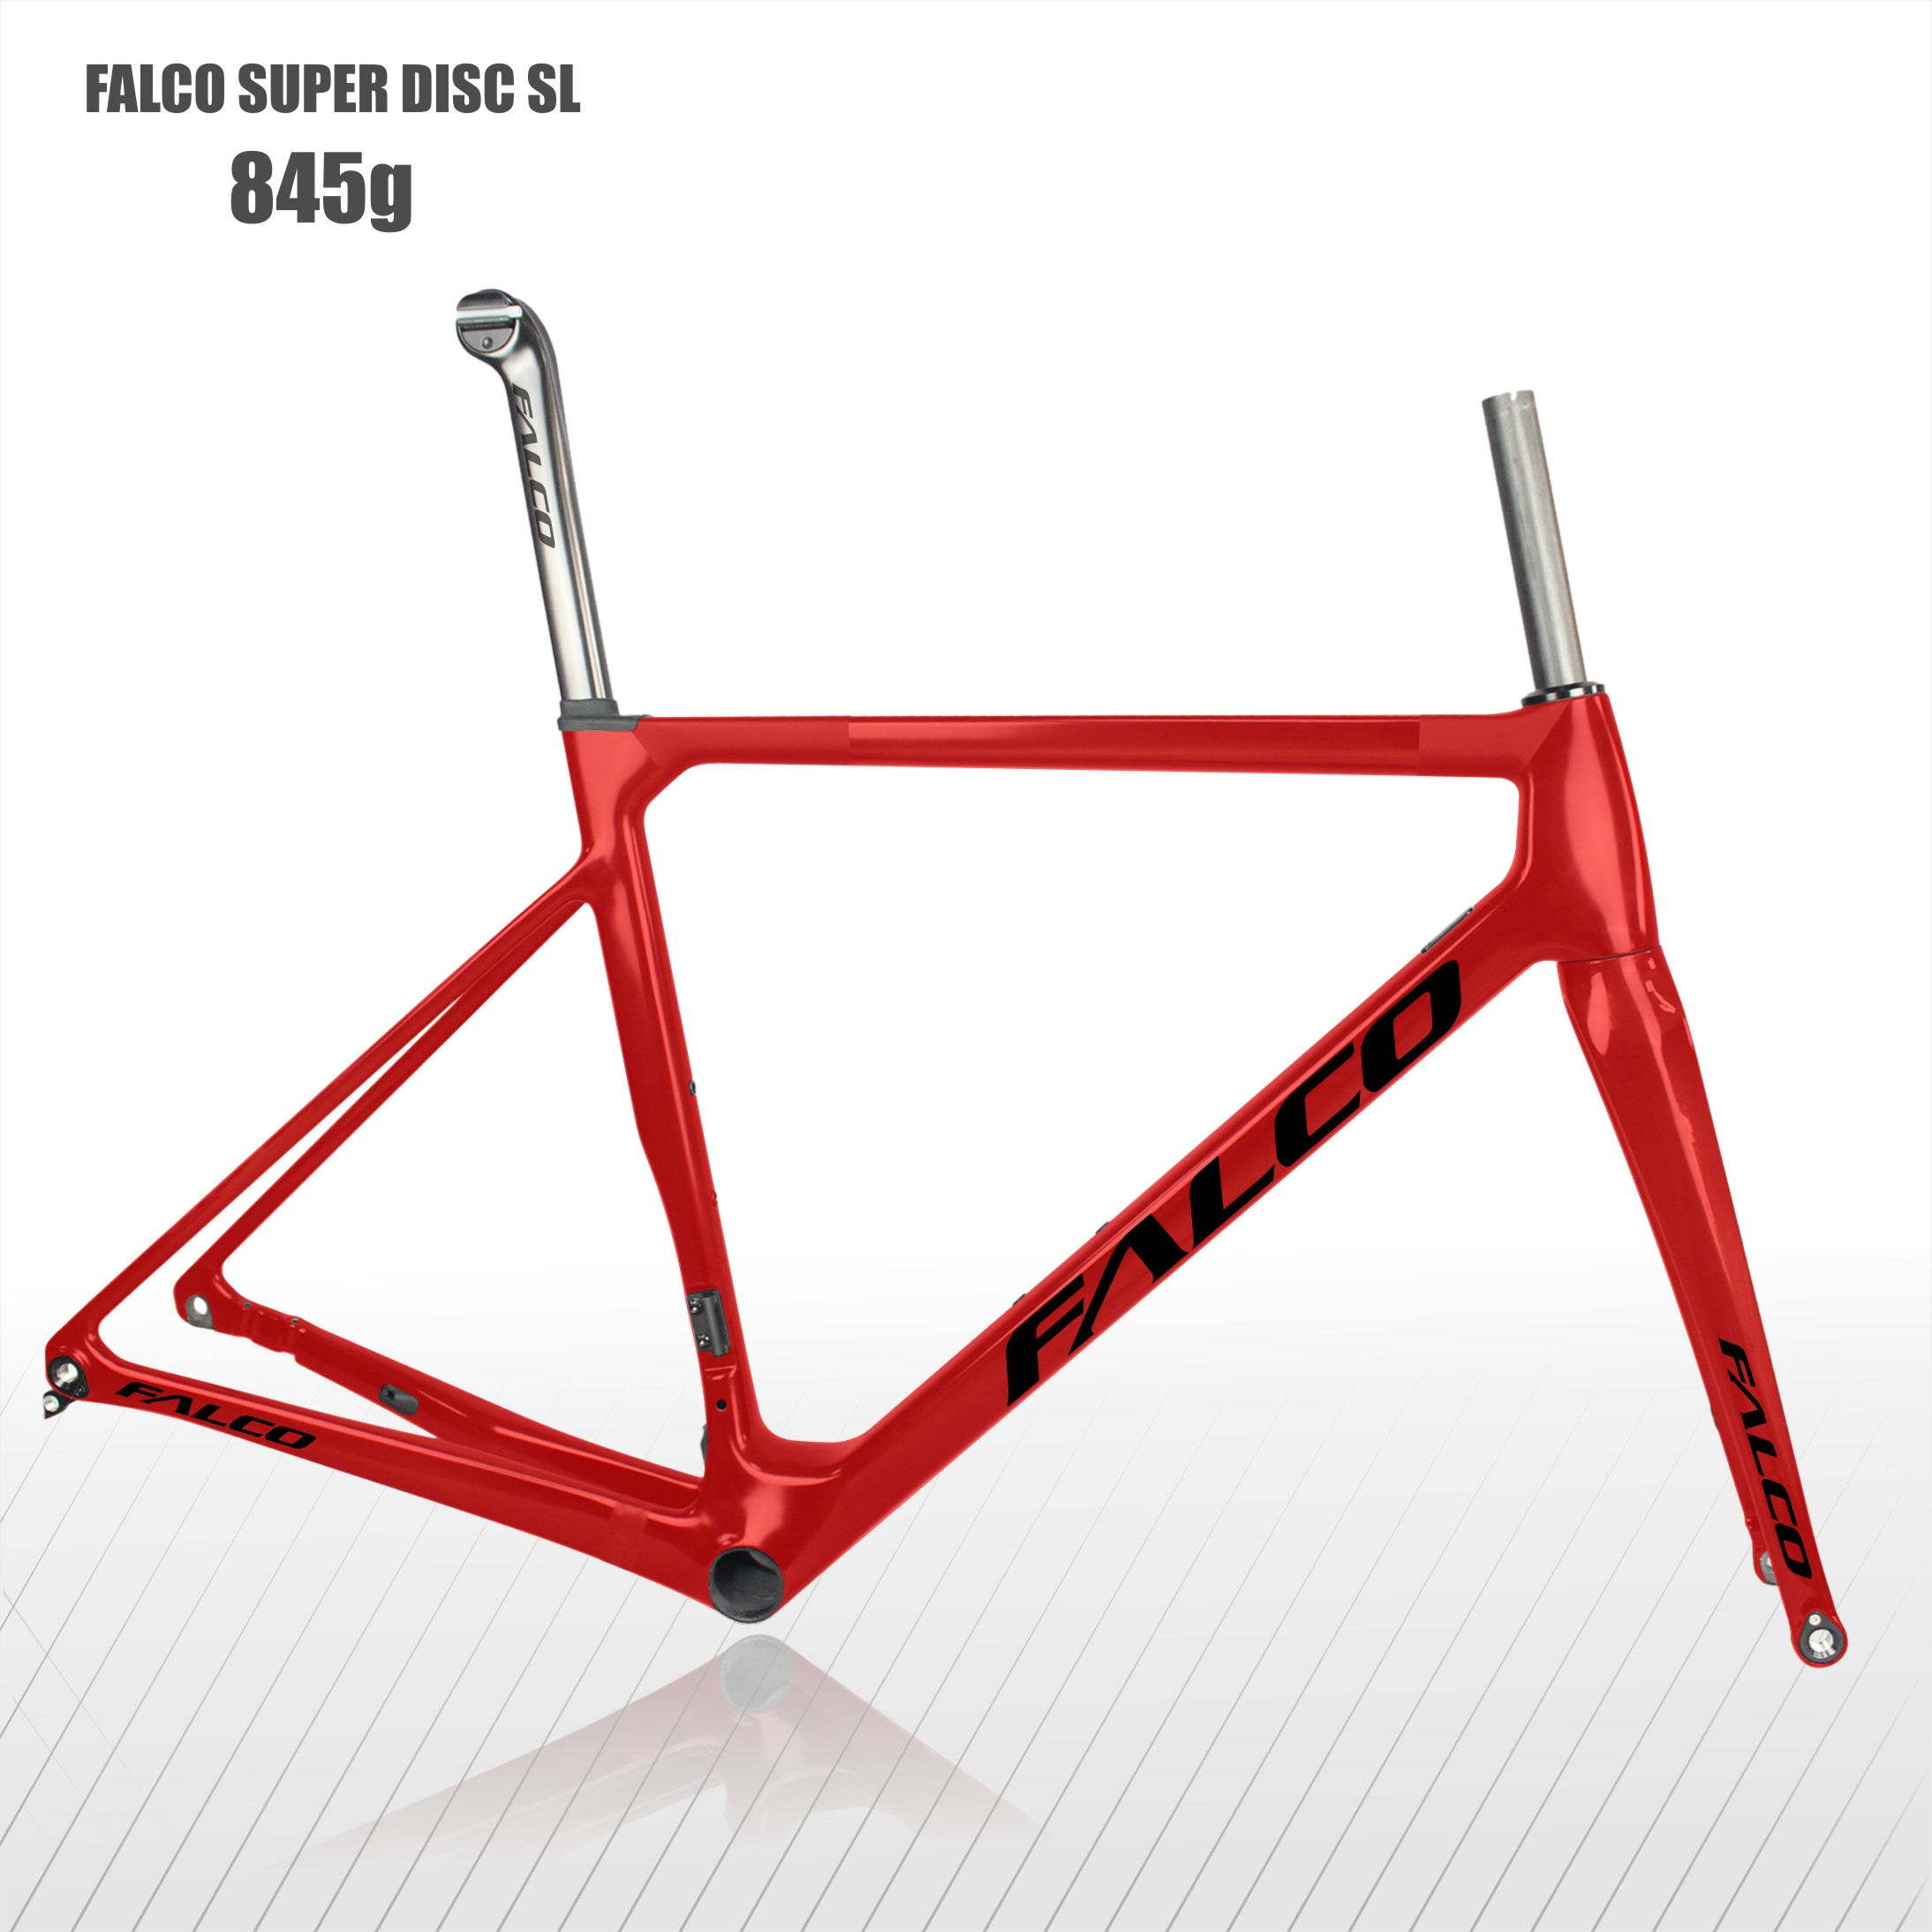 2020 Falco Super Light Disc Road Bike Frameset T1000 Tory Carbon Fiber Disc Frame 49/52/54/56/59cm